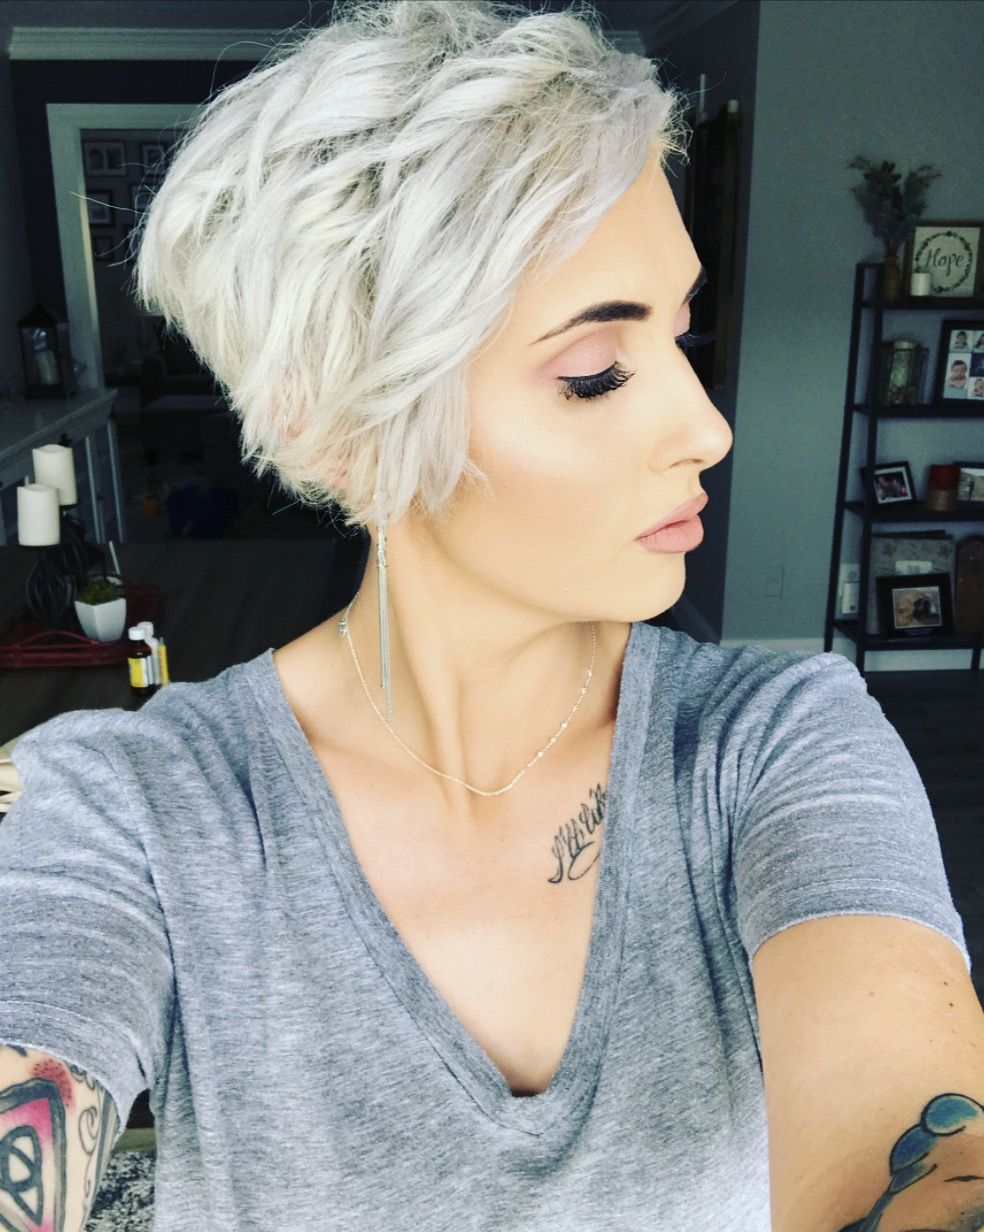 Platinum blonde pixie haircut pixie cut ideas blonde pixie haircut ...